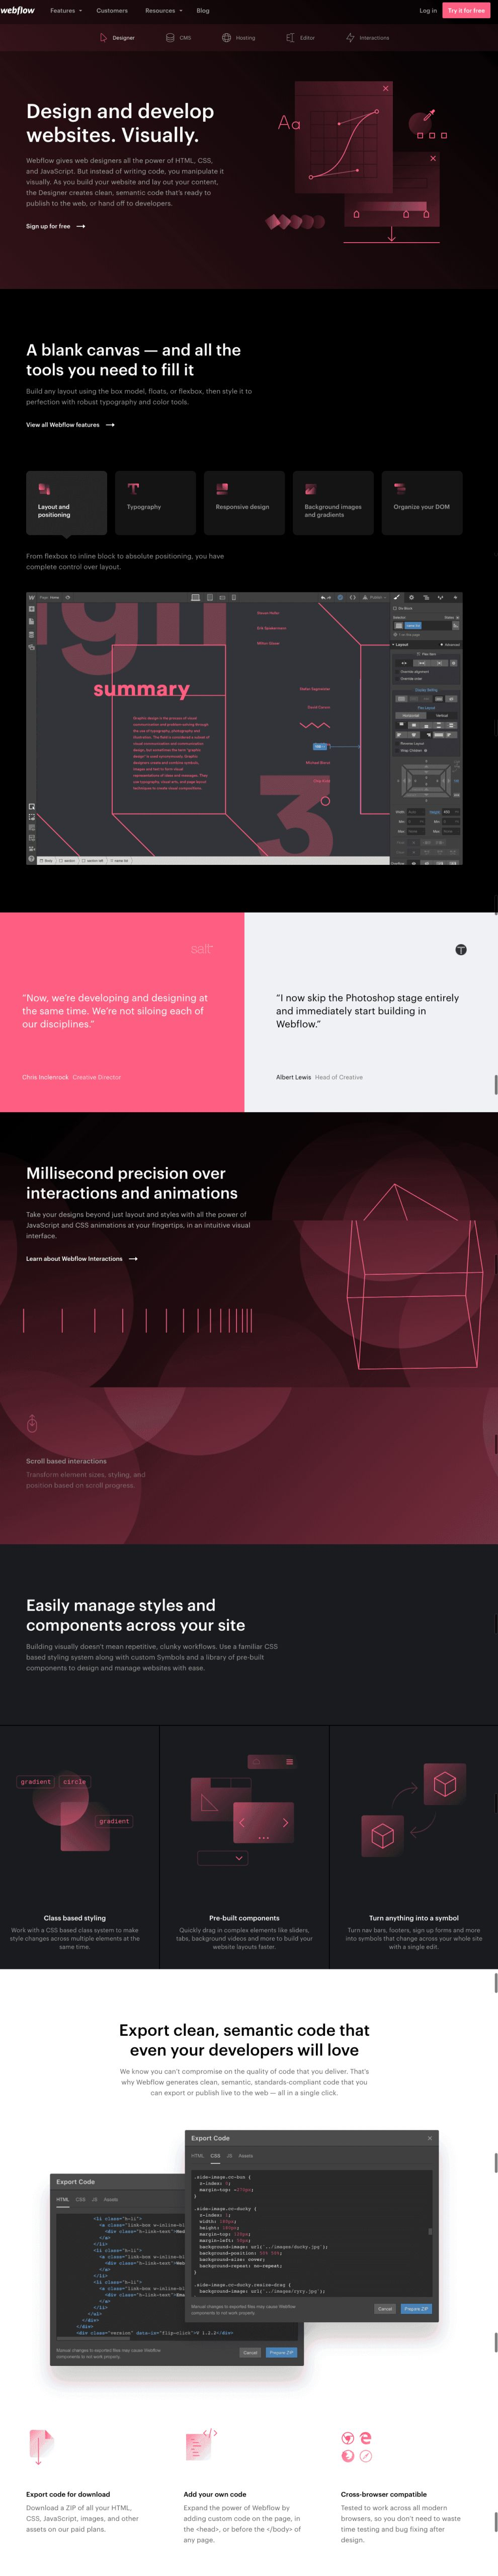 Webflow Top Website Design Product Page